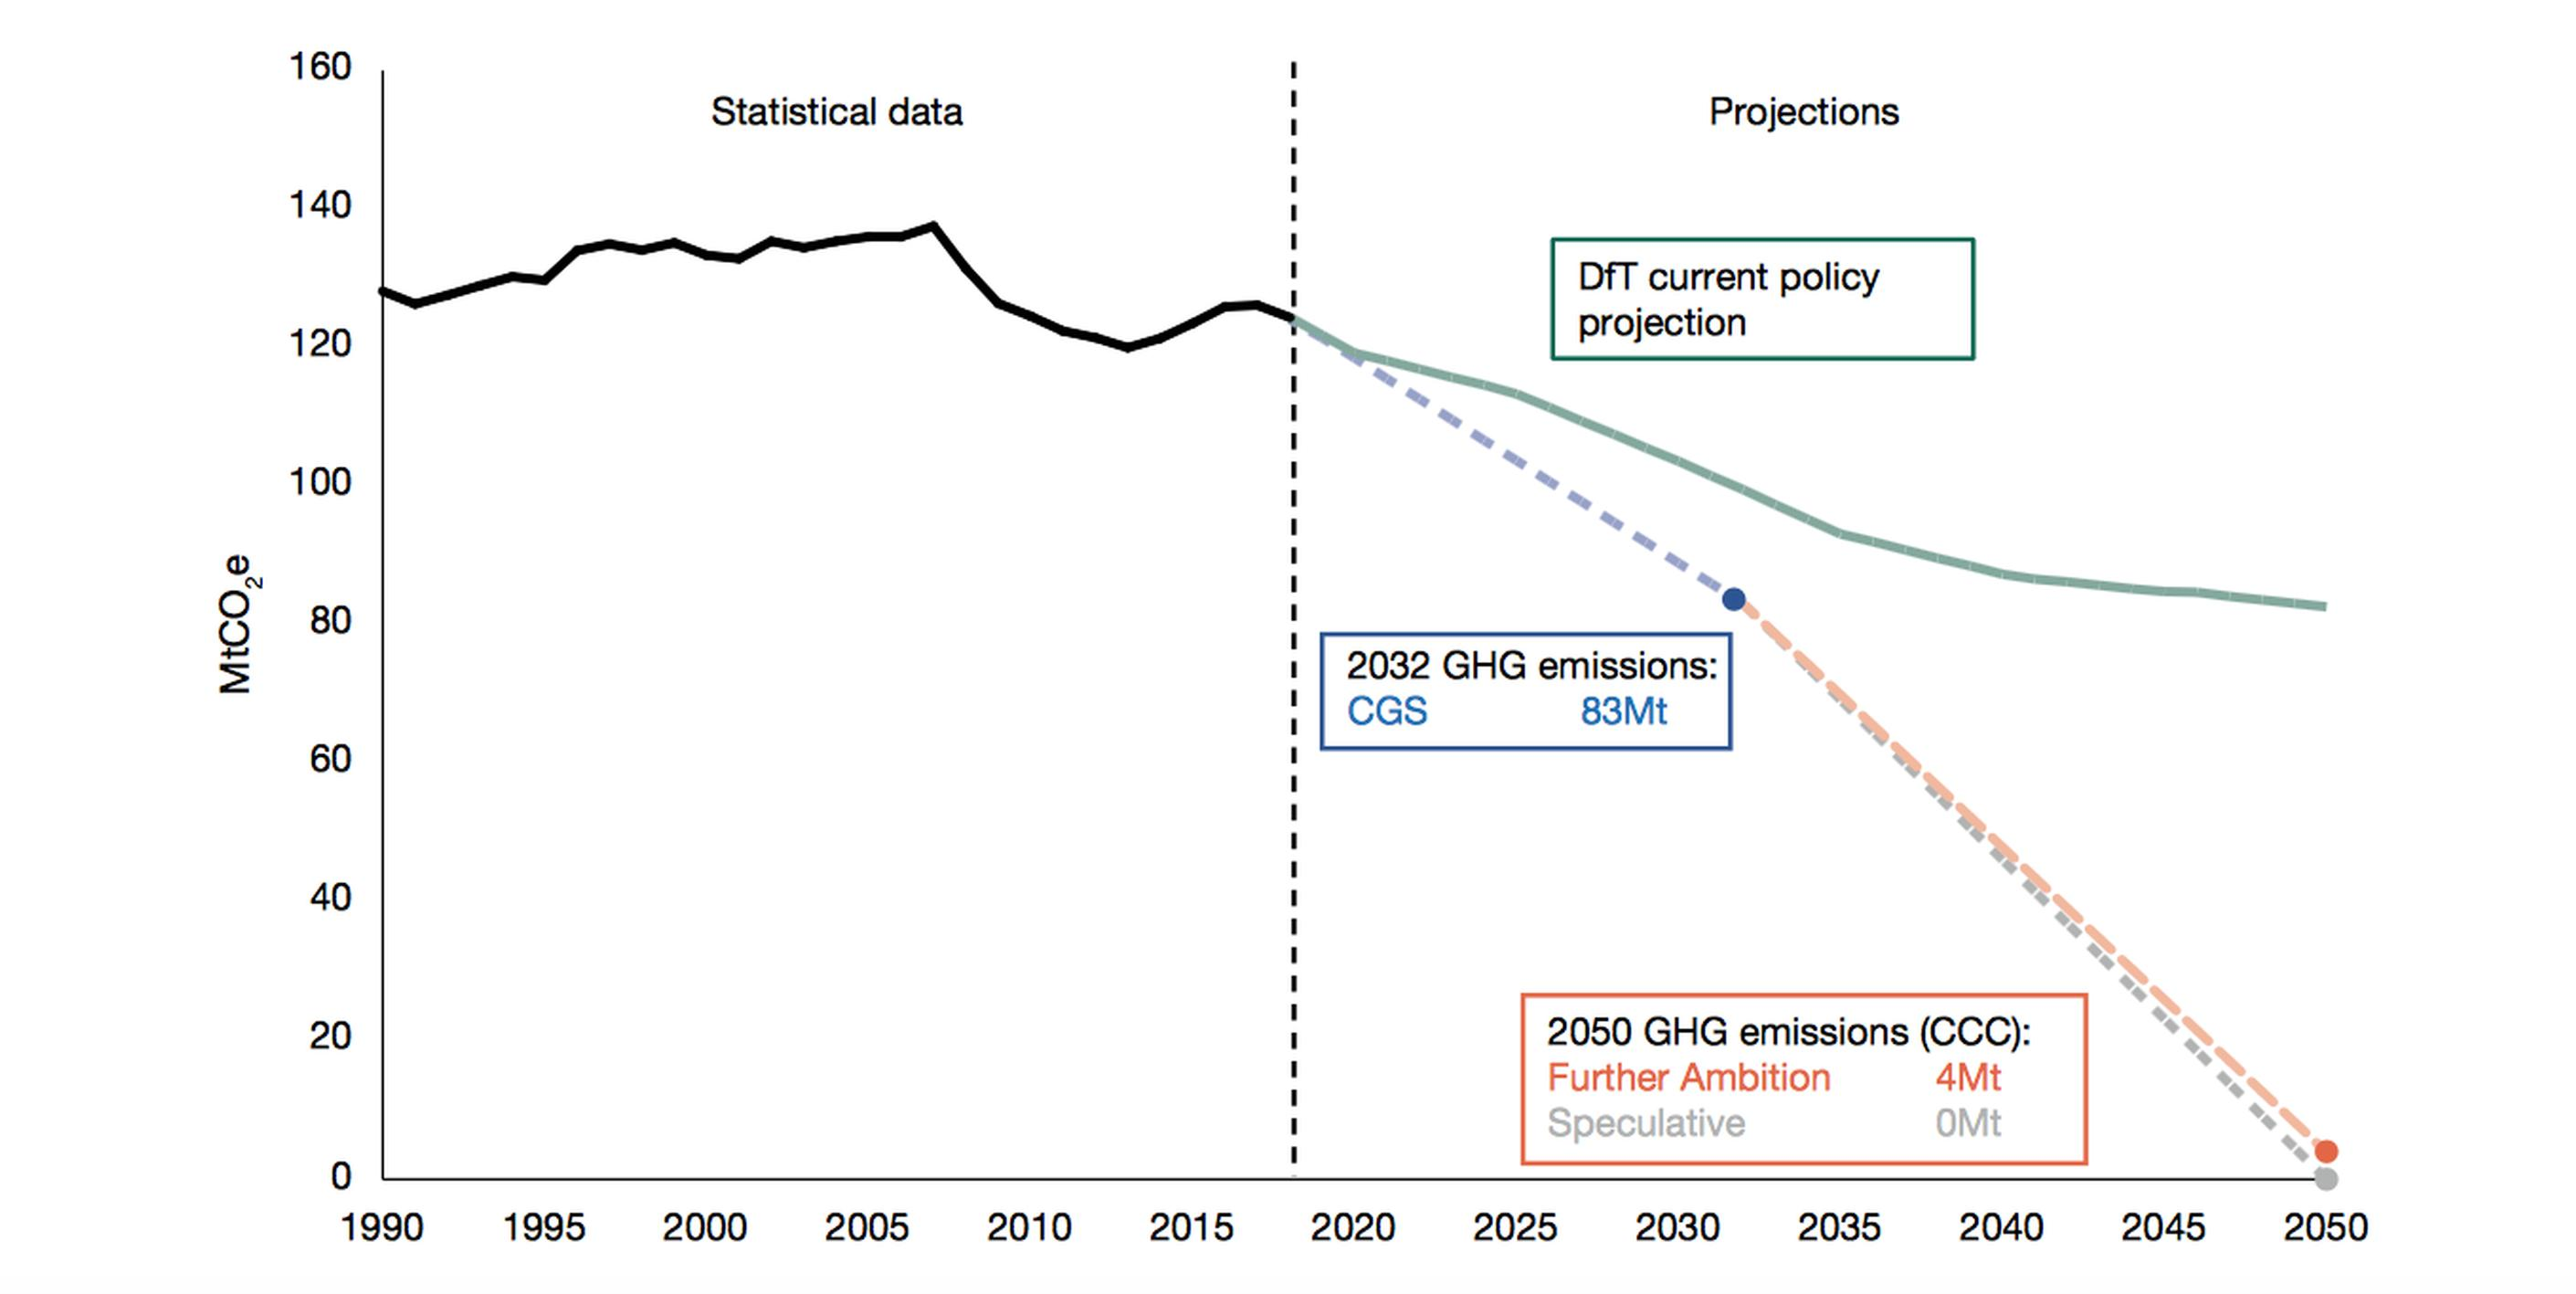 The DfT's current projection is way off Net Zero